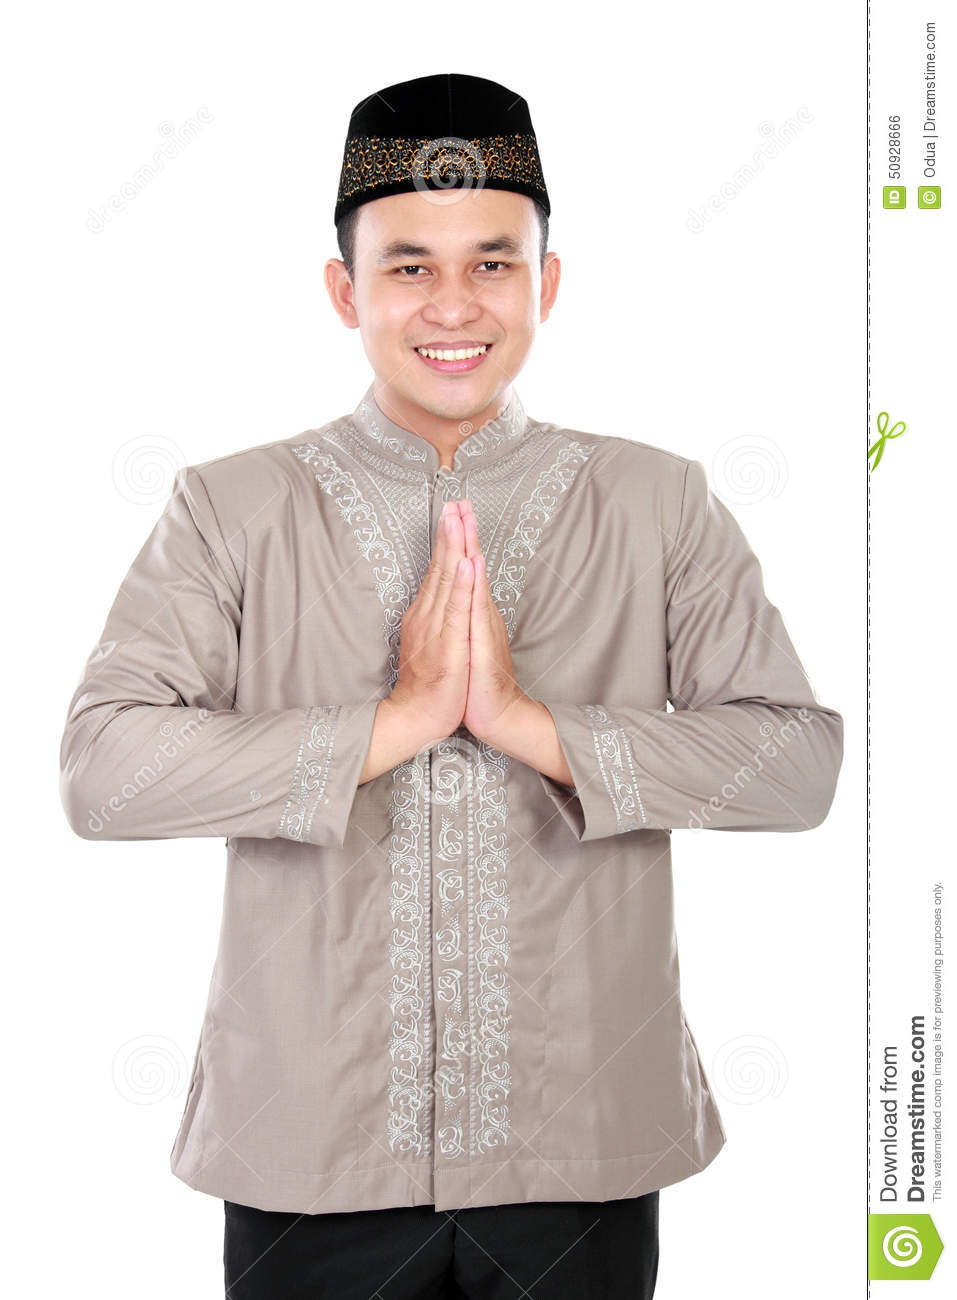 dating a young muslim man Find your single muslim girl or muslim man partner muslims4marriage in our islamic muslim marriage dating site in our muslim dating site will find a muslim man a muslim girl for marriageyou will find also a divorce matrimony and for muslim man find a beautiful muslim girl.